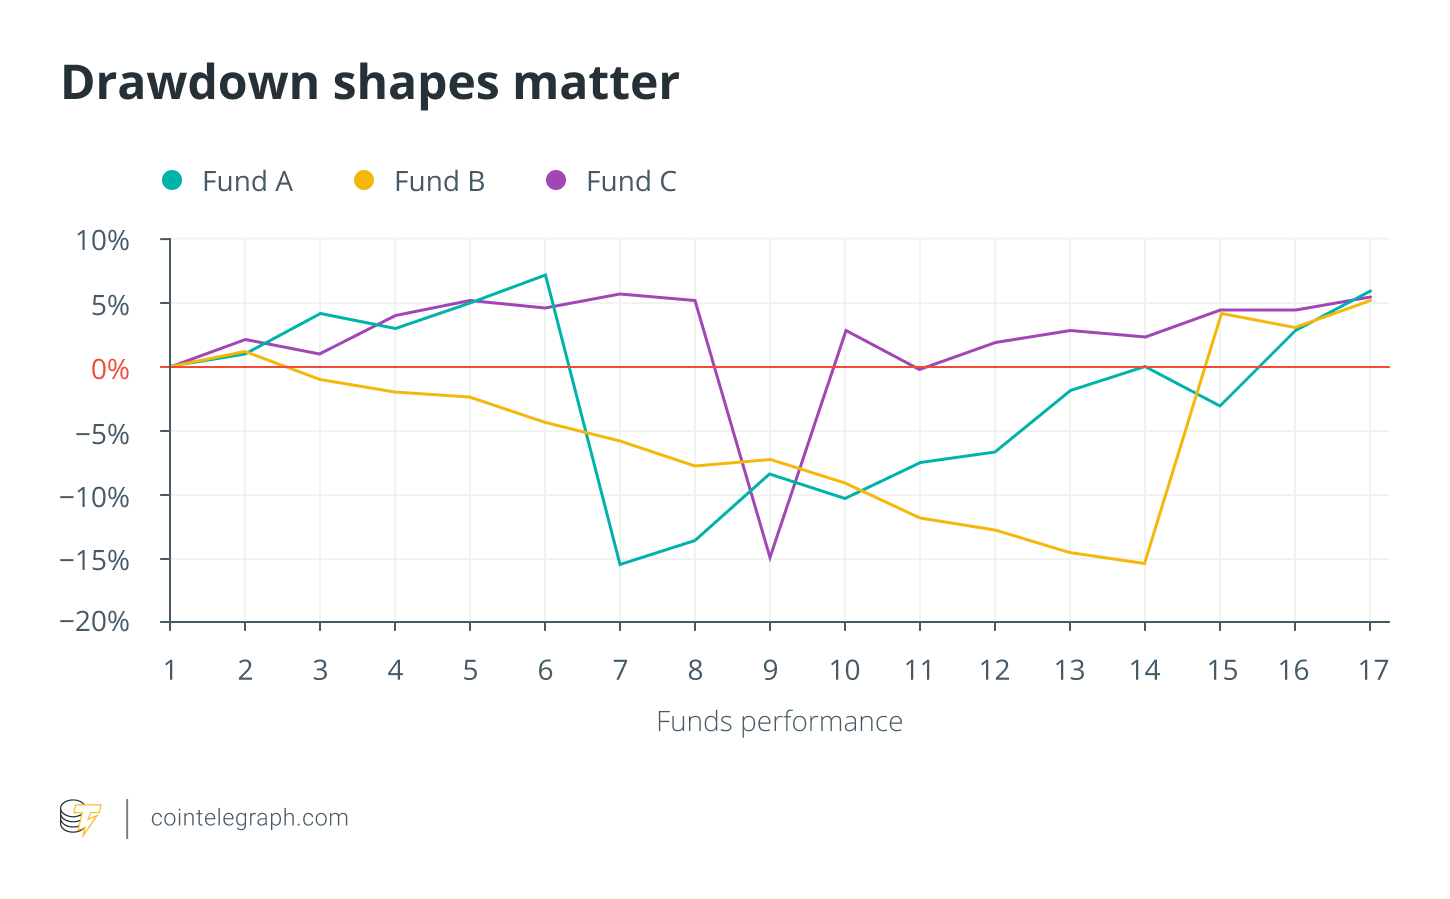 Drawdown shapes matter